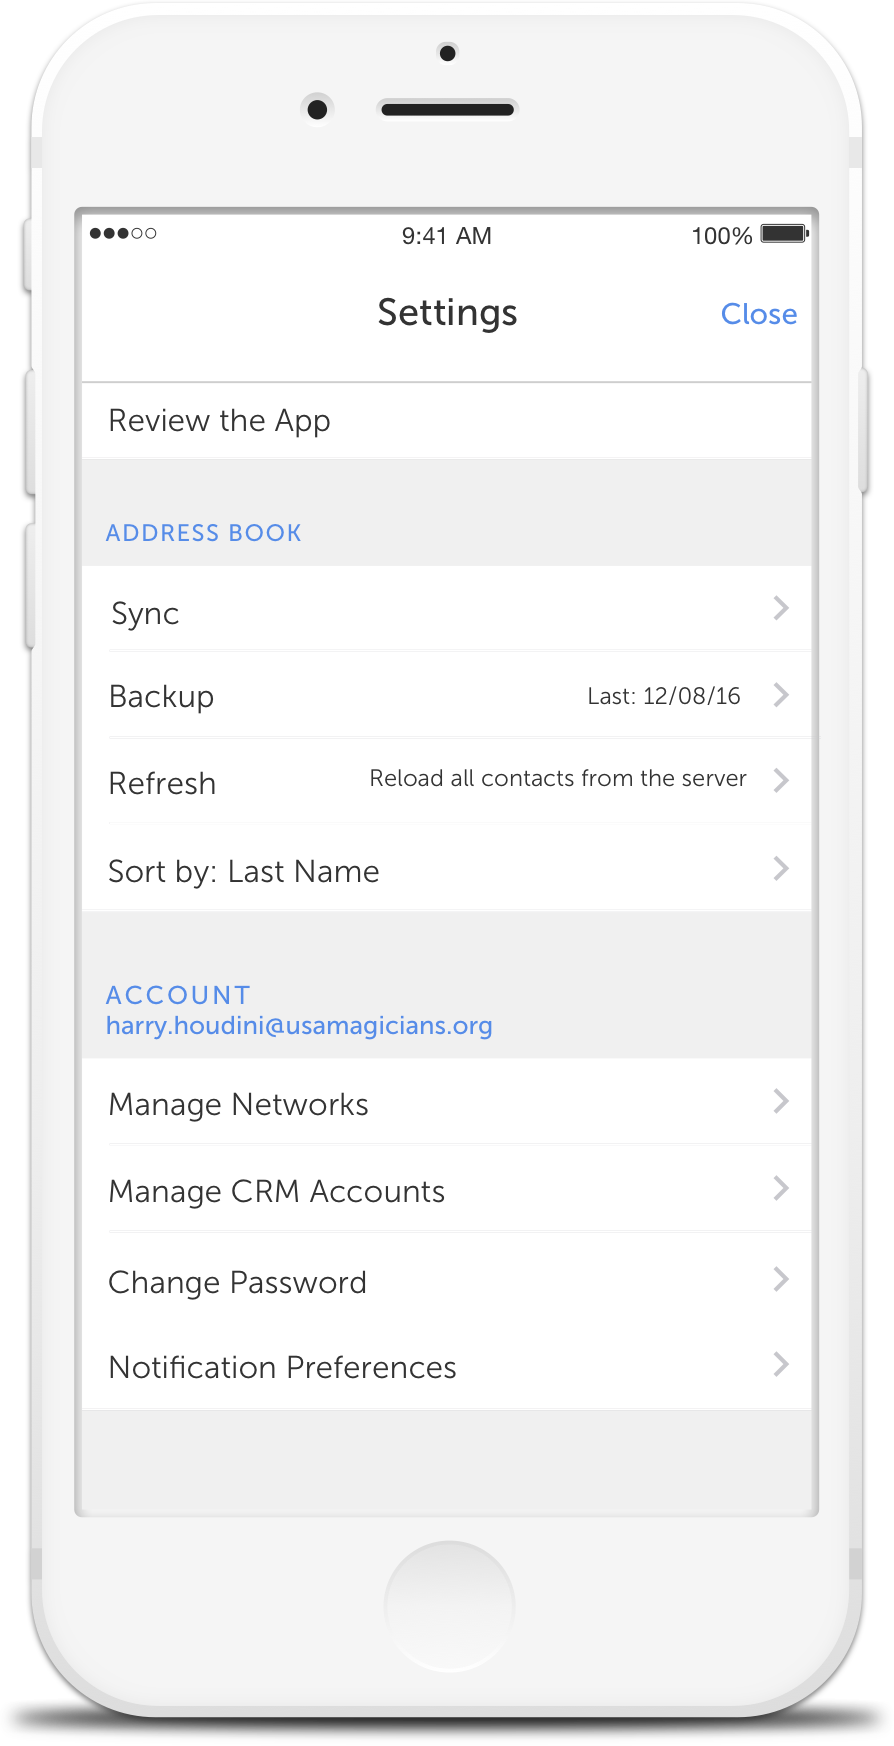 CircleBack - Address Book & Contact Backups, Sync, Sorting, Export to CRM